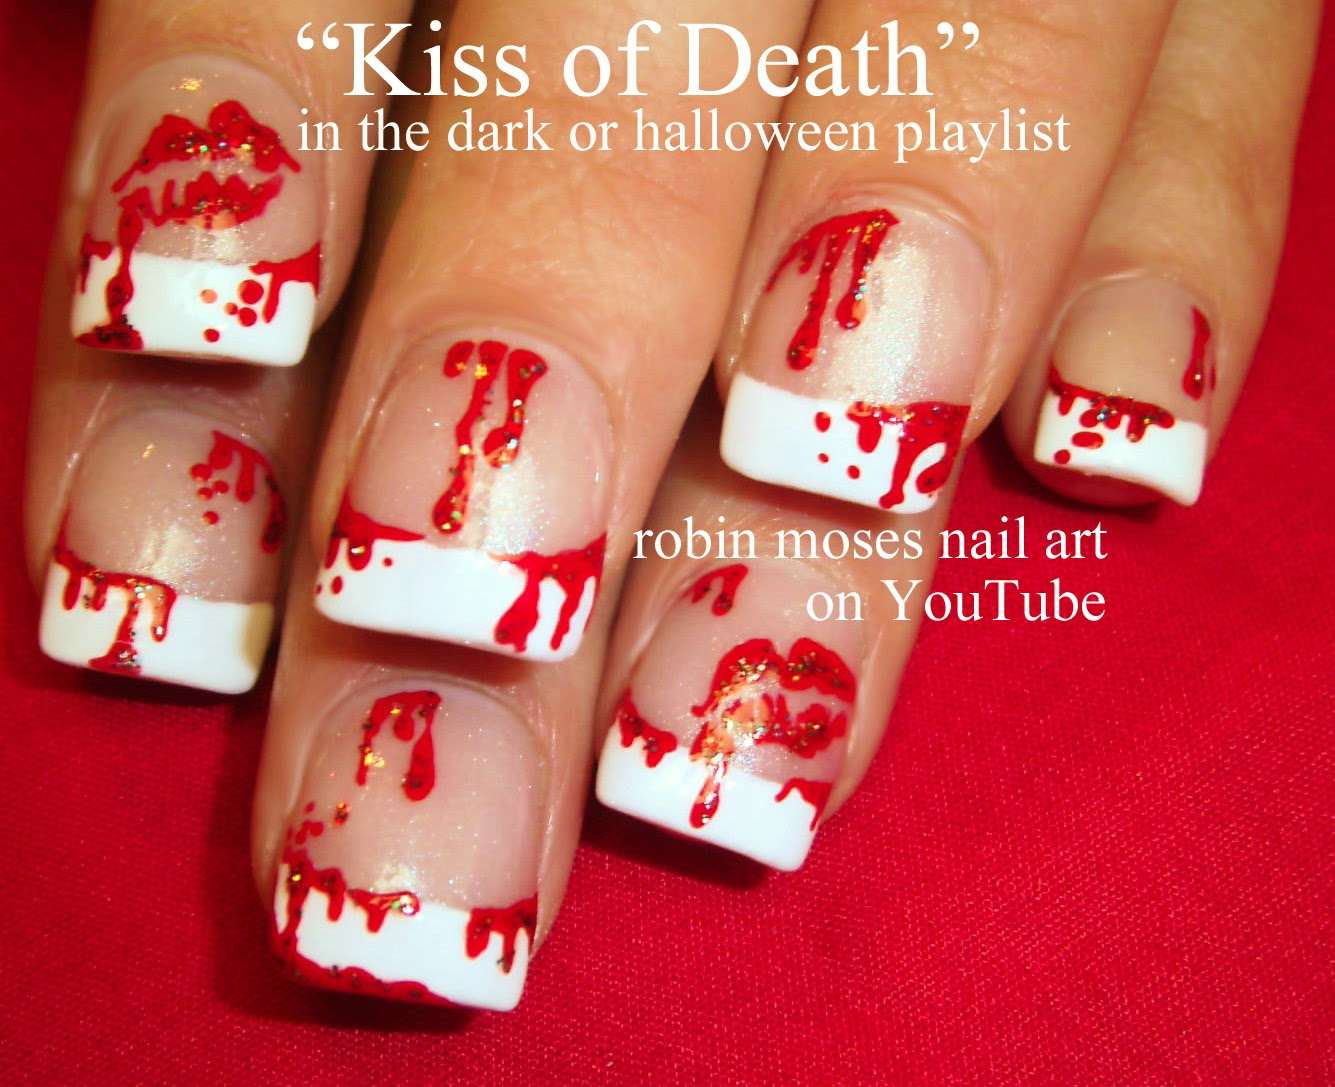 Robin moses nail art halloween nails halloween nail art halloween nails halloween nail art blood splatter nails bloody nails scary nails halloween nail art bloody nail art halloween ideas prinsesfo Gallery